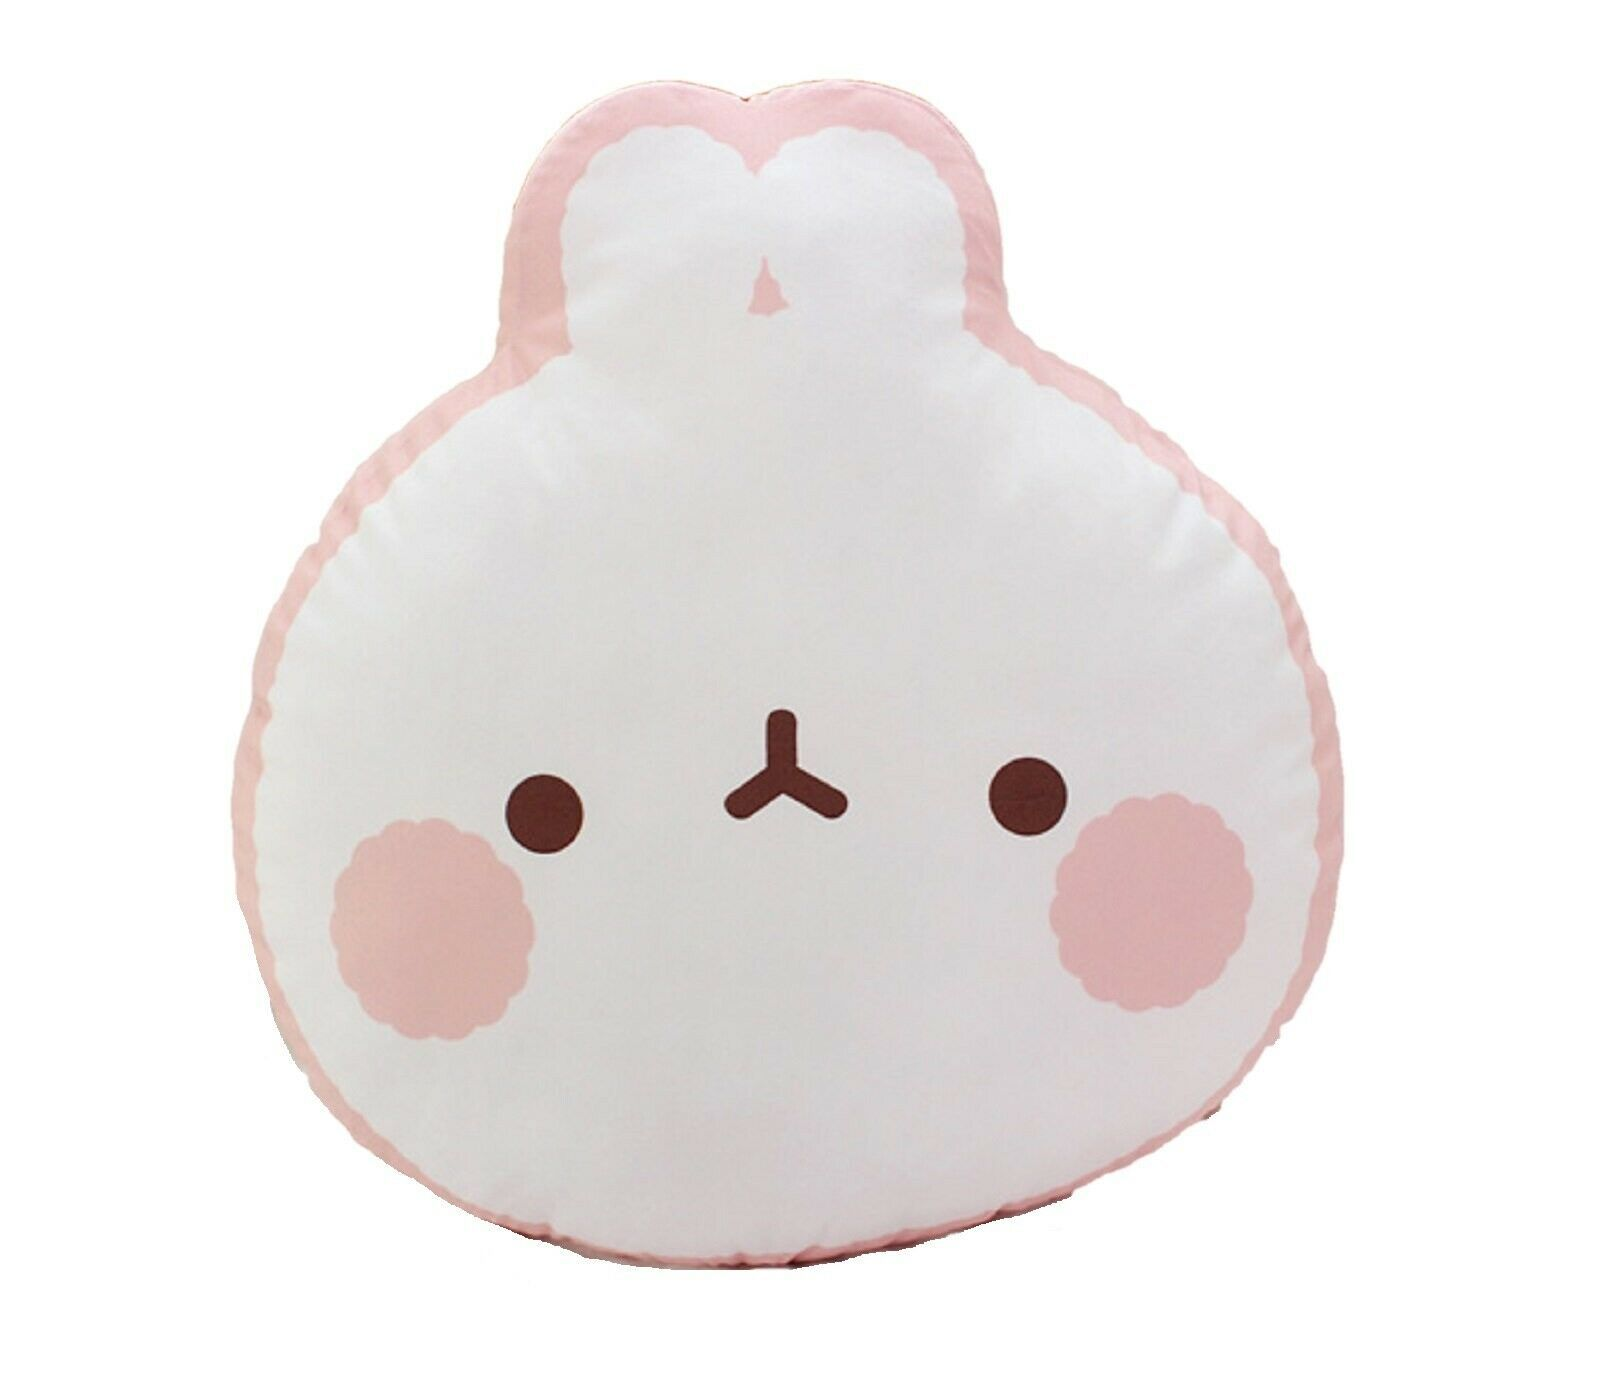 Molang Face Cushion Stuffed Animal Rabbit Plush Toy Pillow 17.7 inches